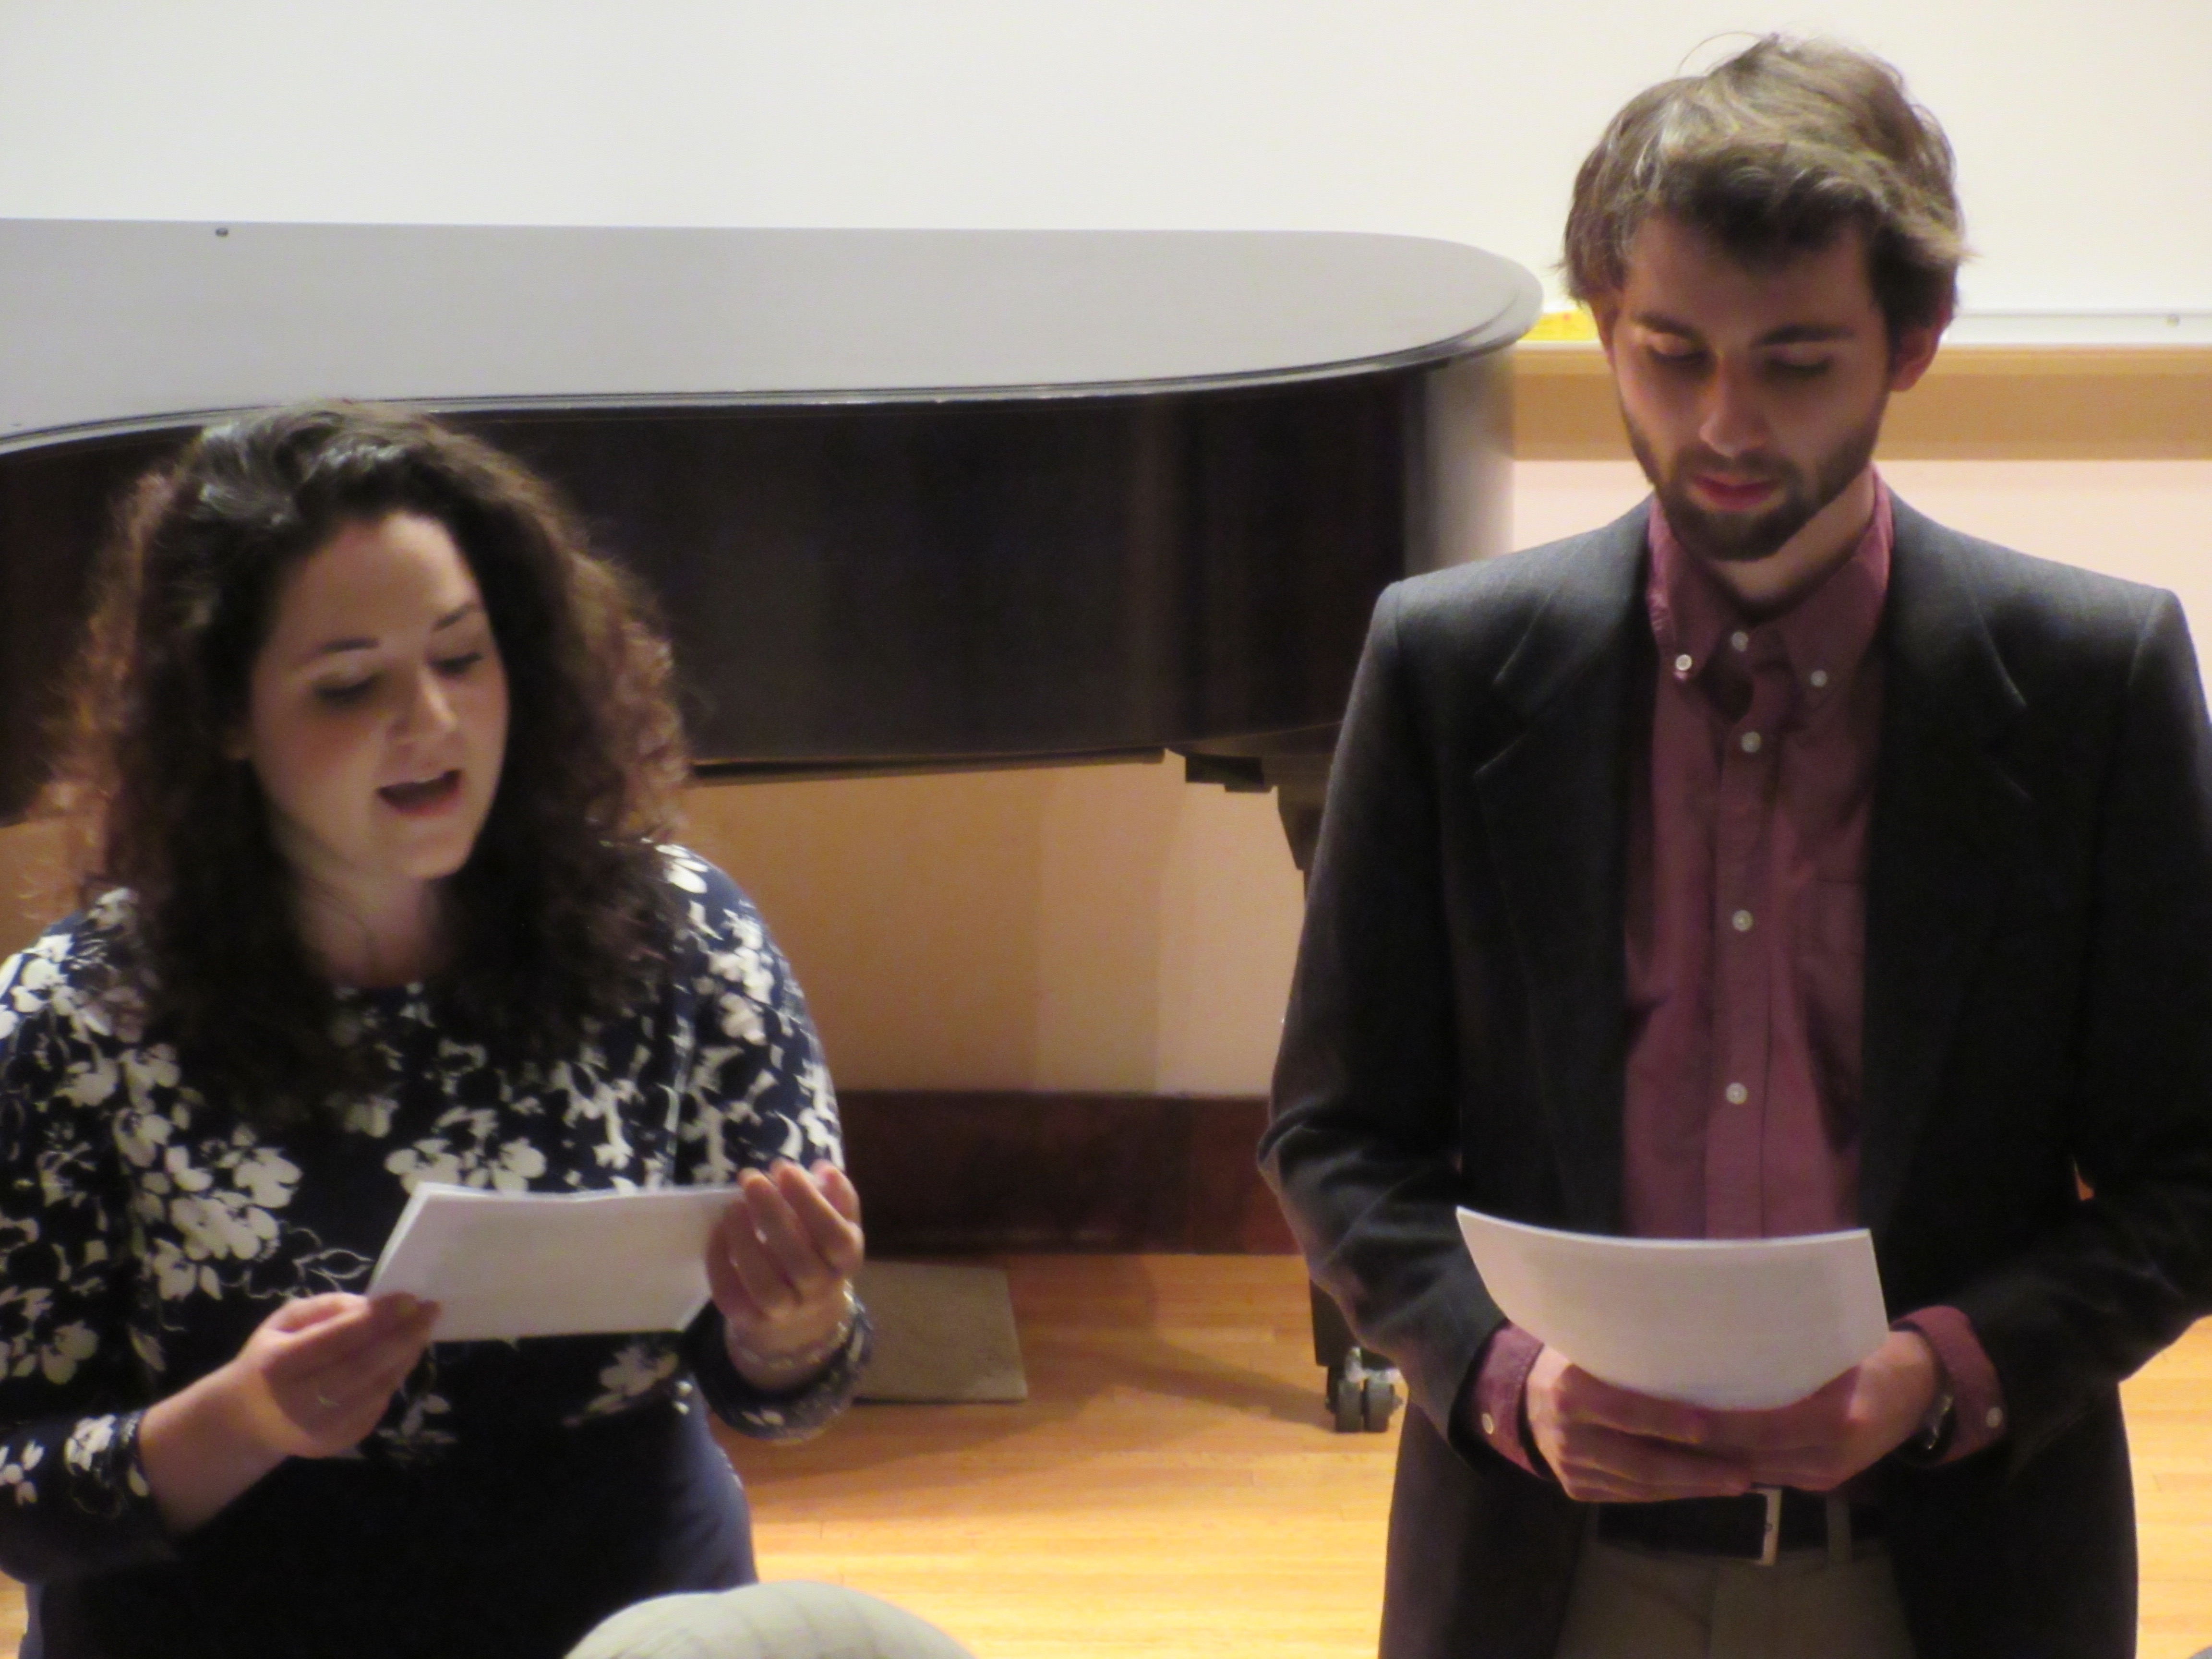 Crane students gave a performance of Nadia Boulanger's farewell speech to Crane students after WWII